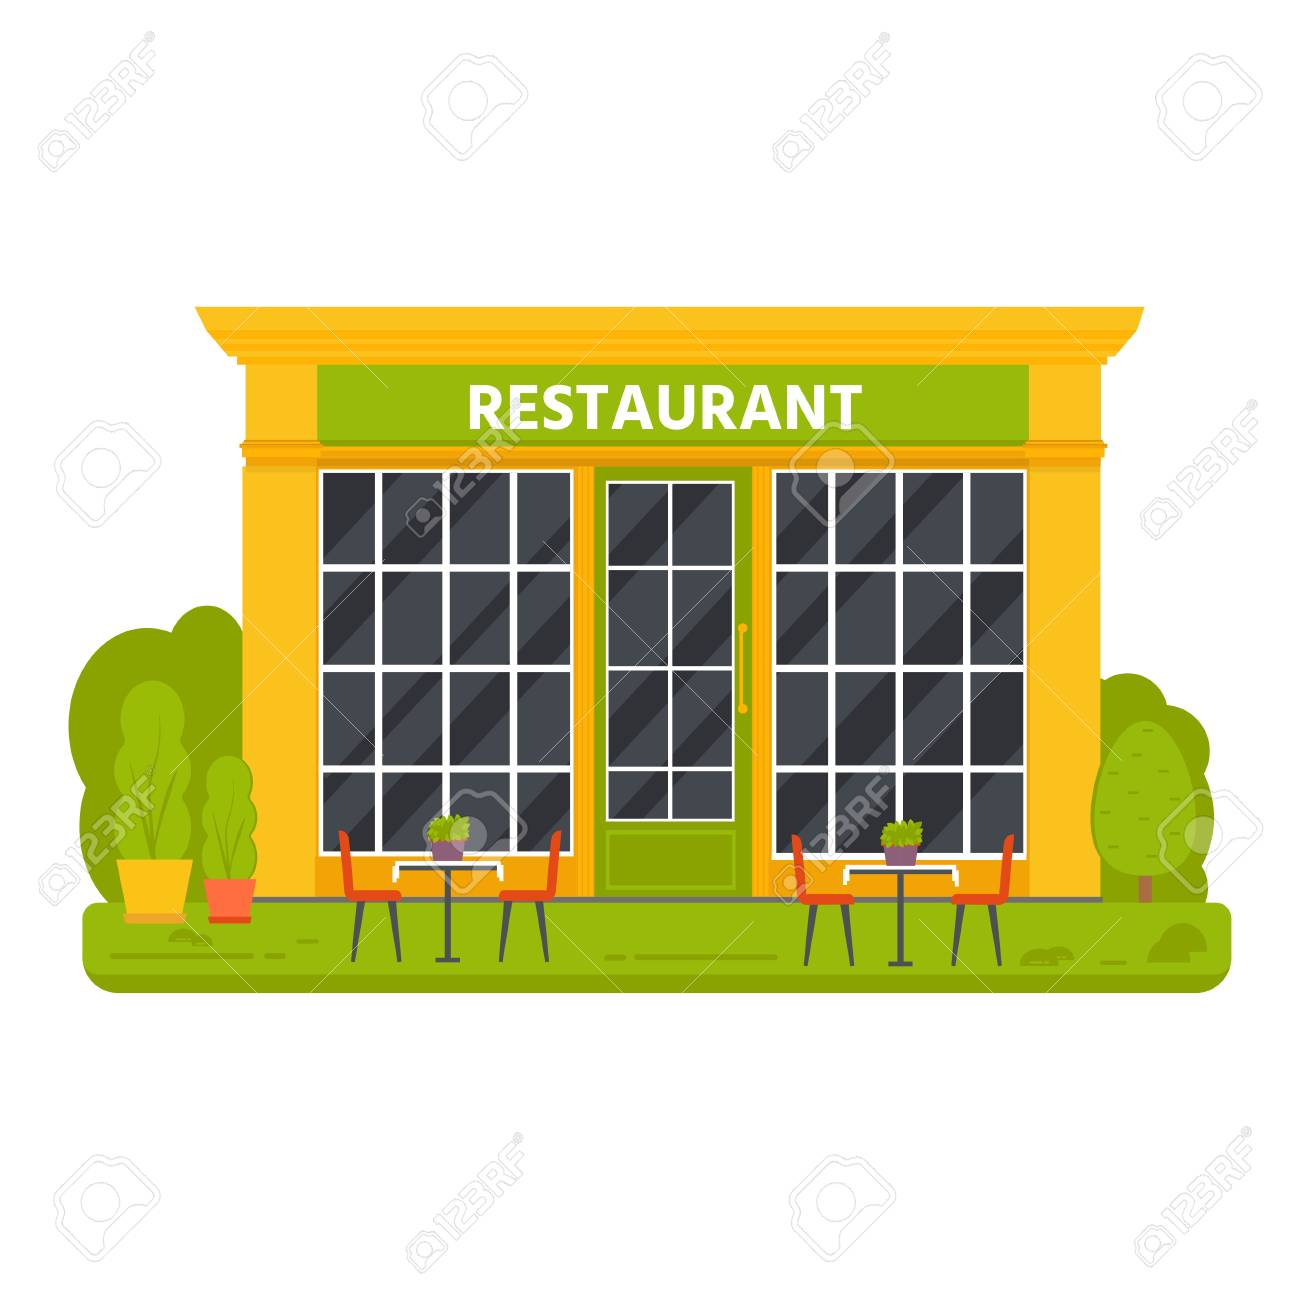 Vector Flat Design Restaurant Exterior Shop Facade Store Front Royalty Free Cliparts Vectors And Stock Illustration Image 103403822